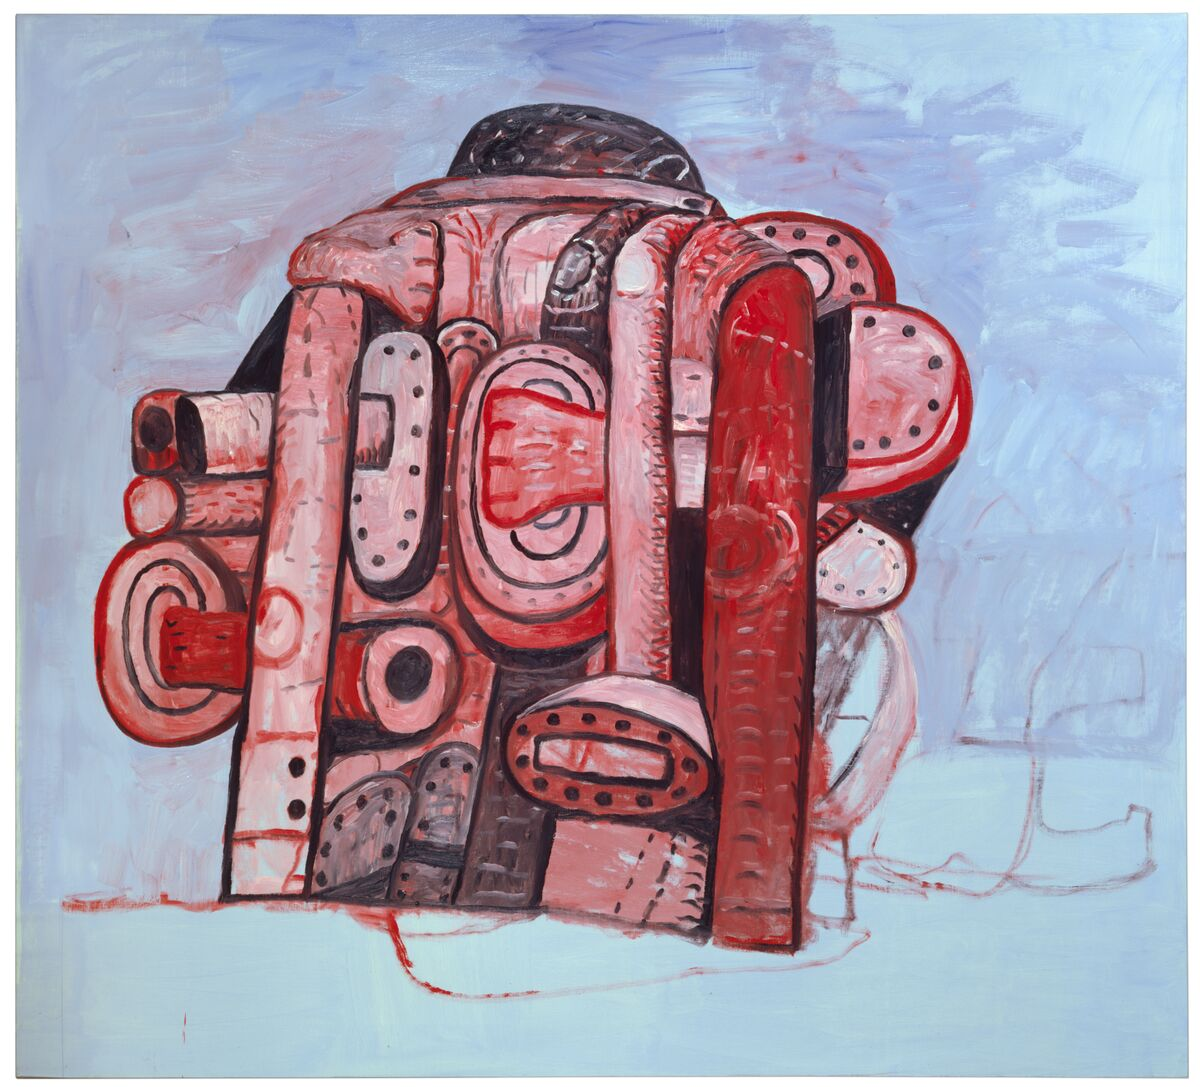 Back View II Philip Guston 1978 Oil on canvas 185.4 x 205.7 cm / 73 x 81 in © The Estate of Philip Guston and Hauser & Wirth Private Collection